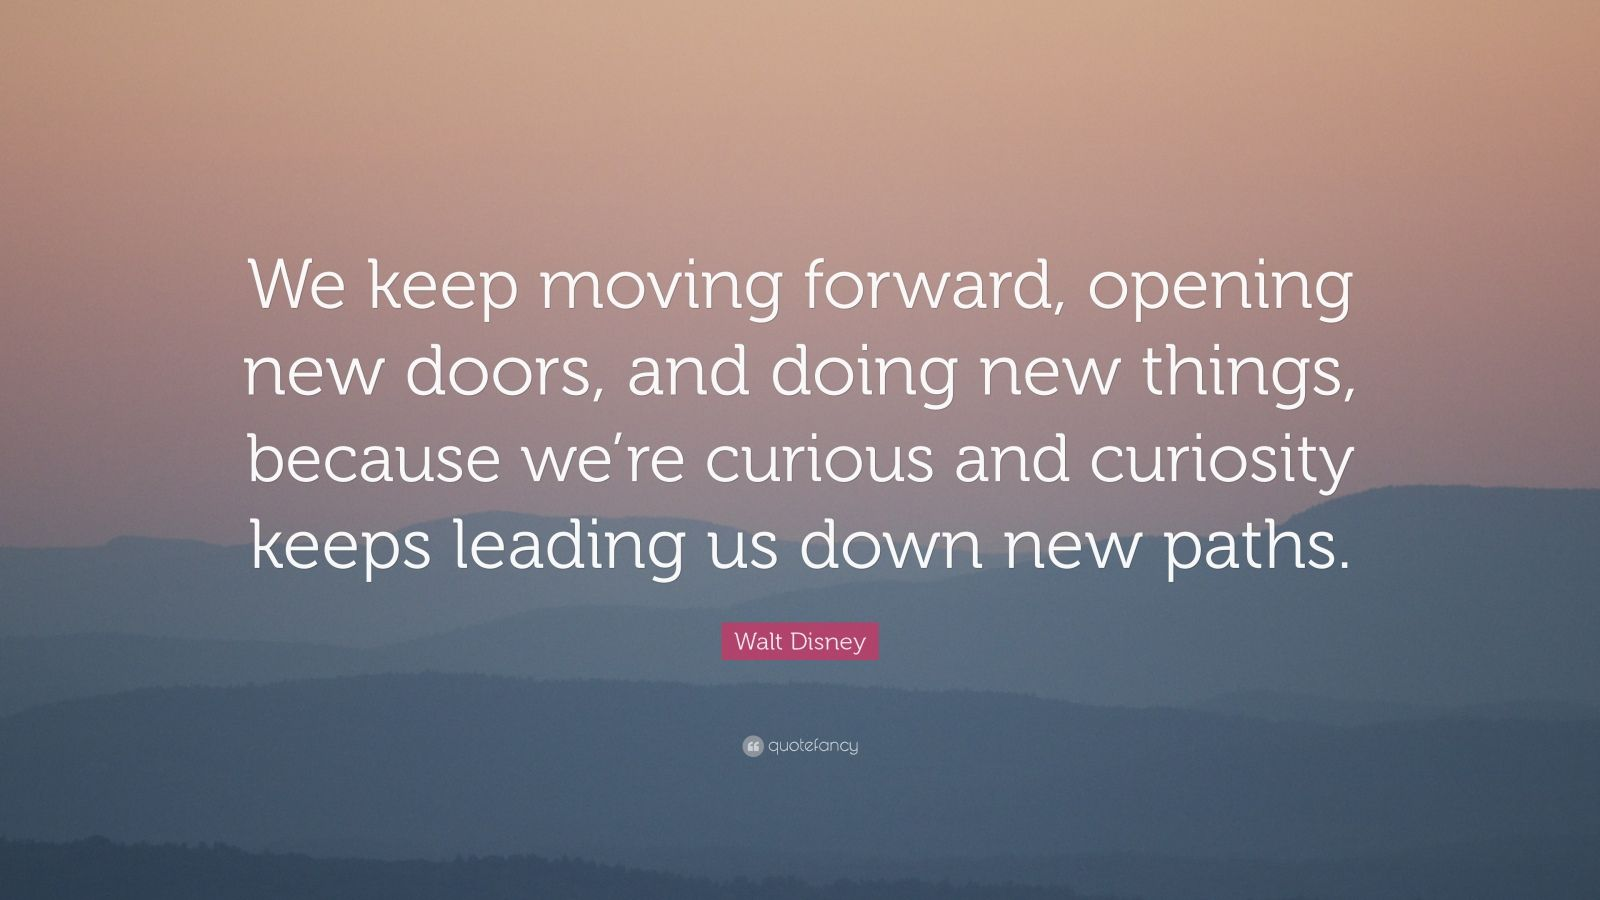 walt disney quotes keep moving forward - photo #16